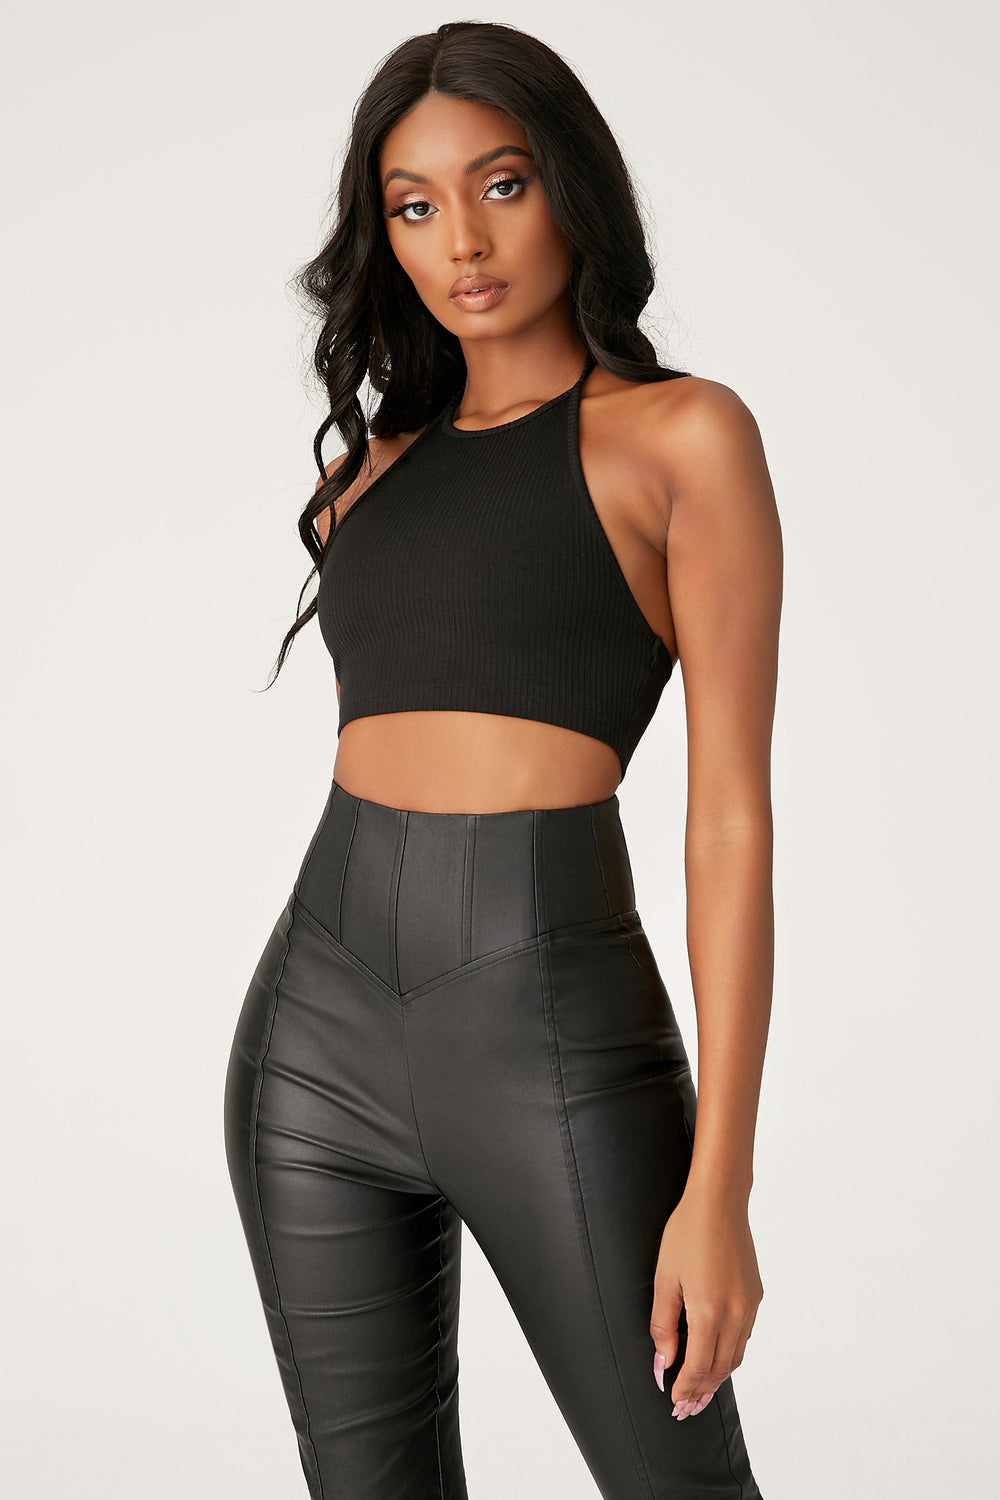 Zima Leatherette Corsetted High Waisted Pants - Black - MESHKI